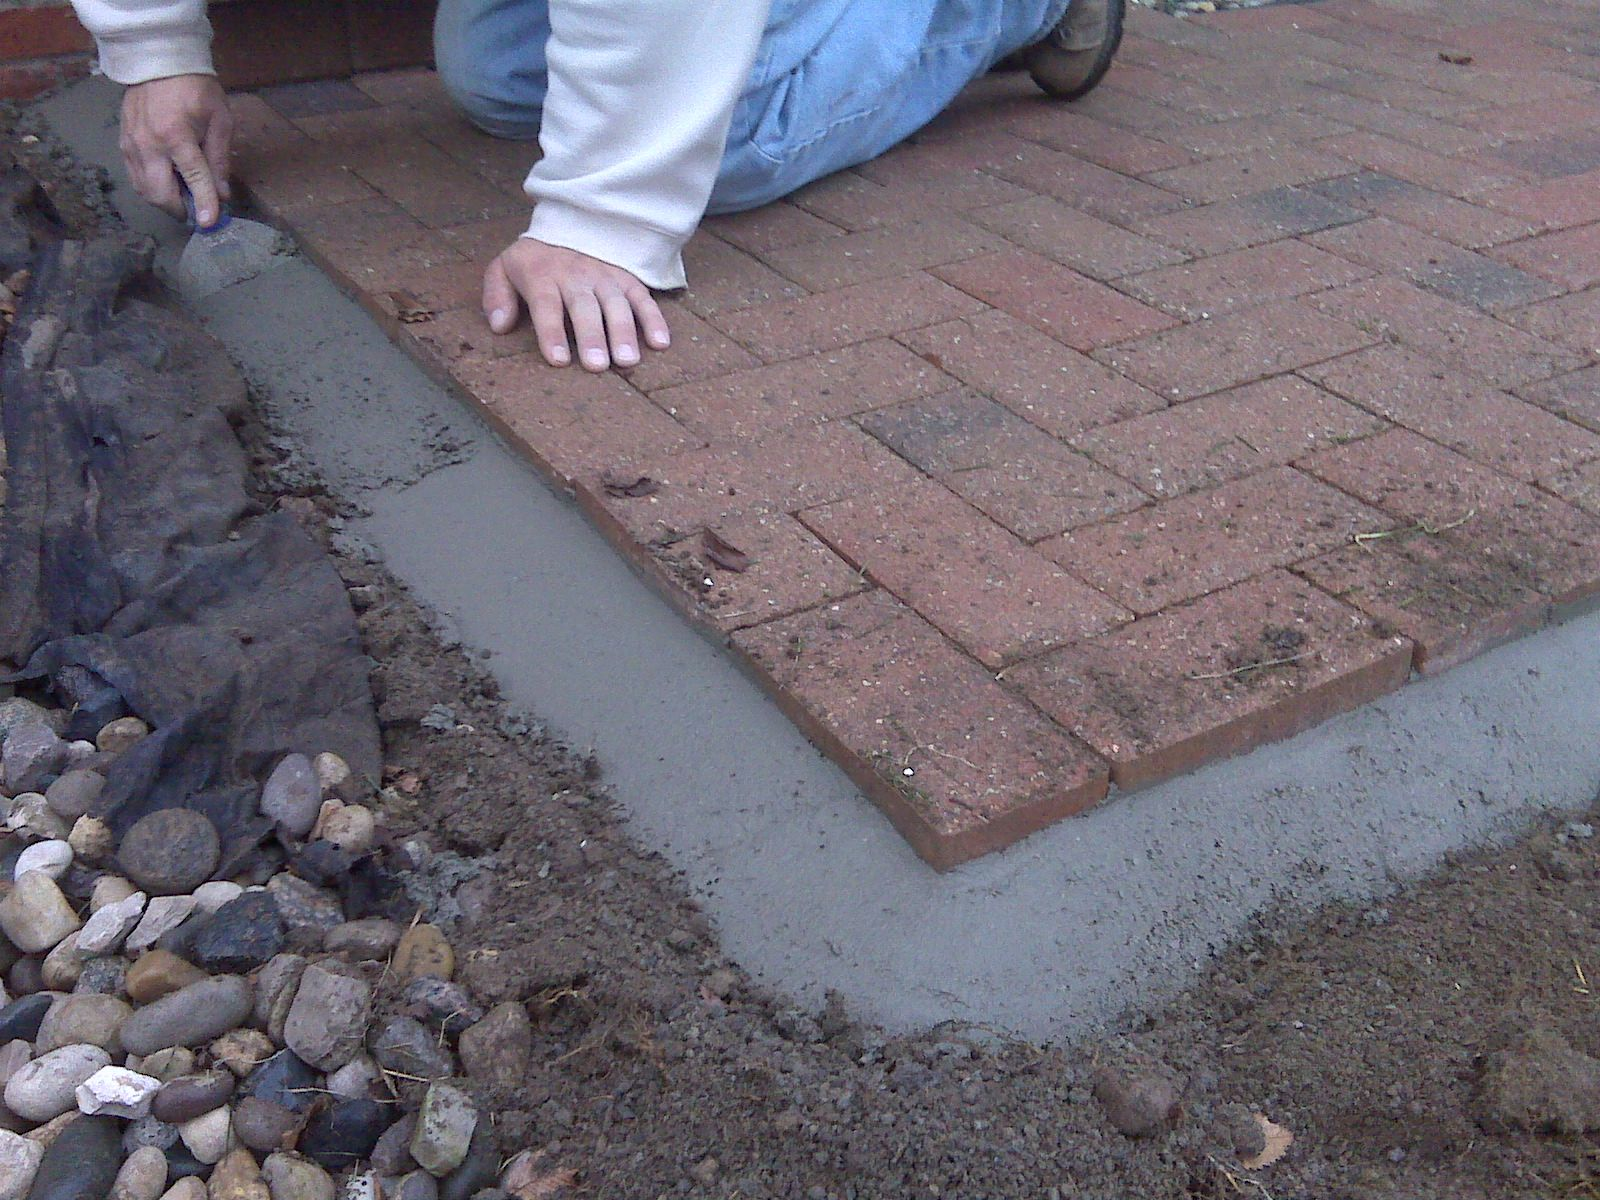 How To Lay Brick Pavers Brick Pavers Outdoor Projects Outdoor Living Gardening Projects Tips And Tricks Garde Brick Pavers Patio Edging Brick Paver Patio